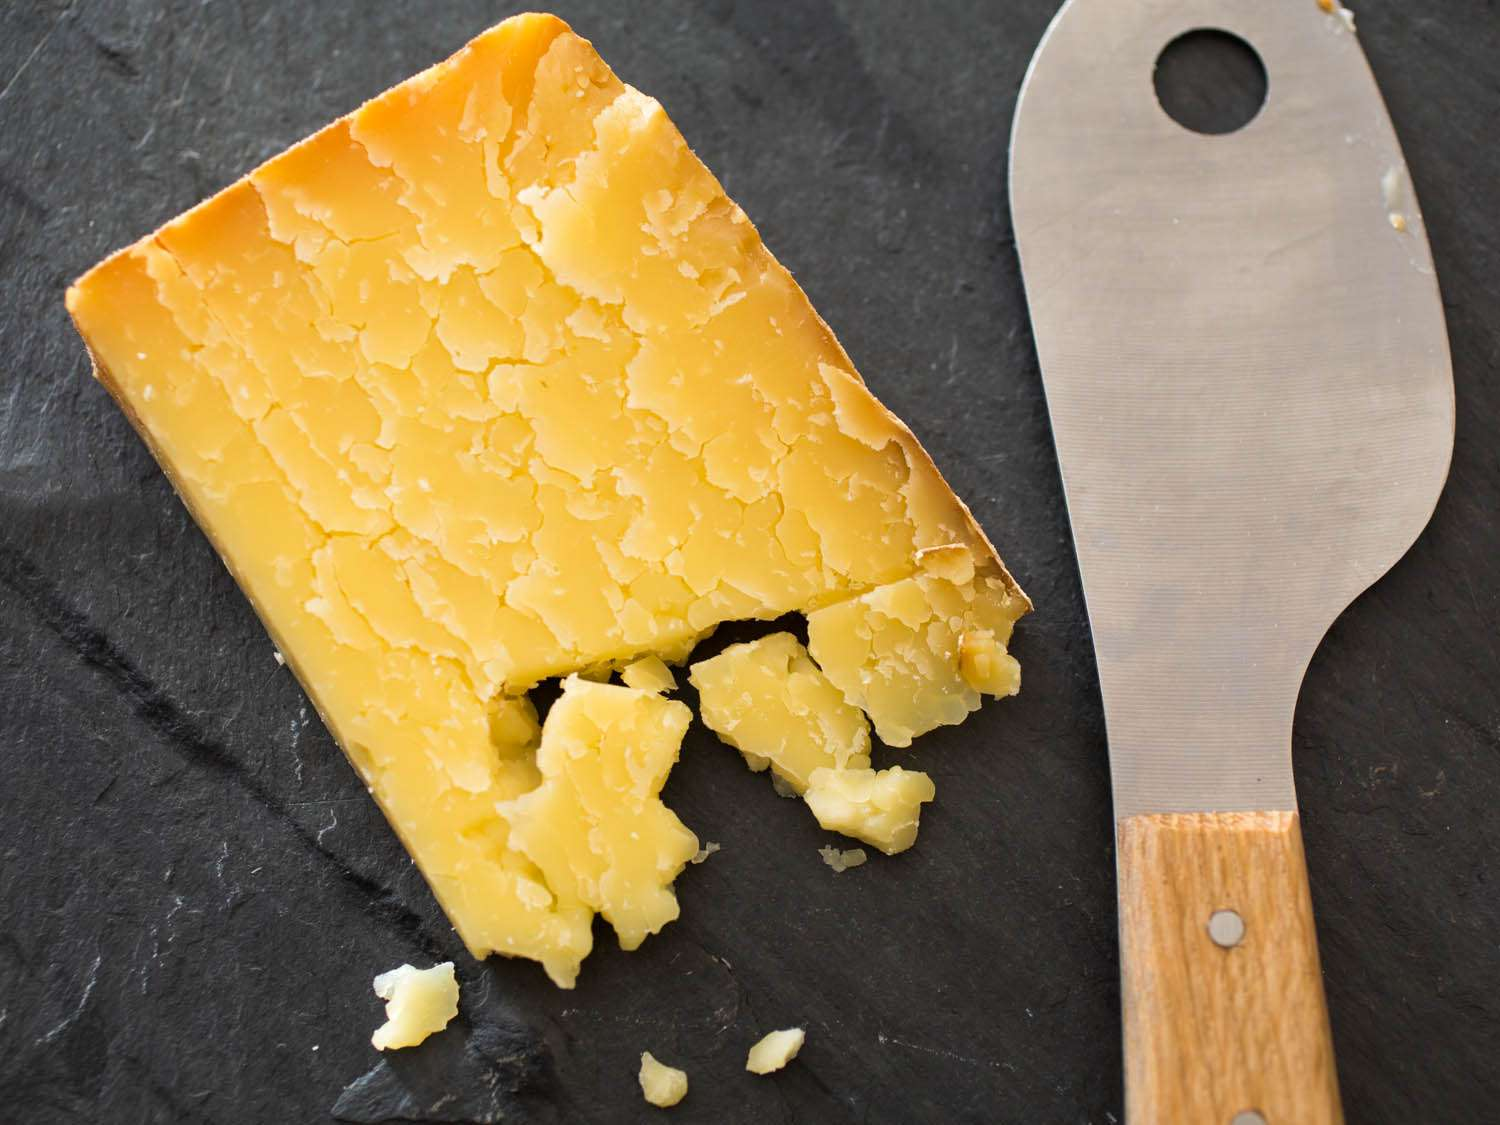 20150206-northeast-cheese-cabot-clothbound-cheddar-vicky-wasik-1.jpg